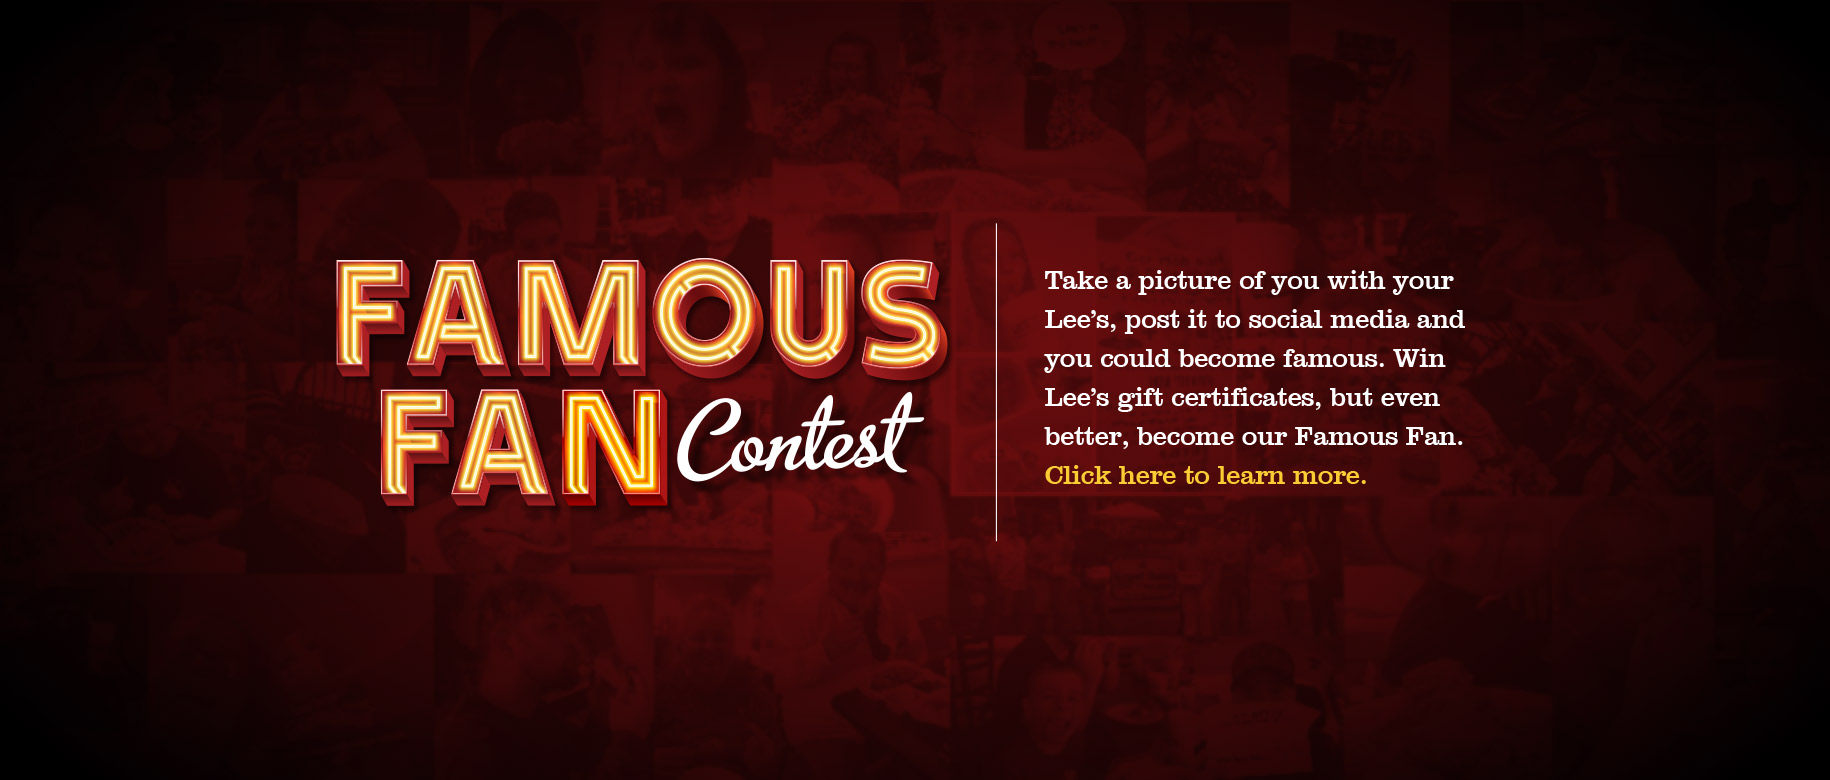 Famous Fan Contest · Take a picture of you with your Lee's, post it to social media, and you could become famous. Win Lee's gift certificates, but even better, become our Famous Fan. Go here to learn more.